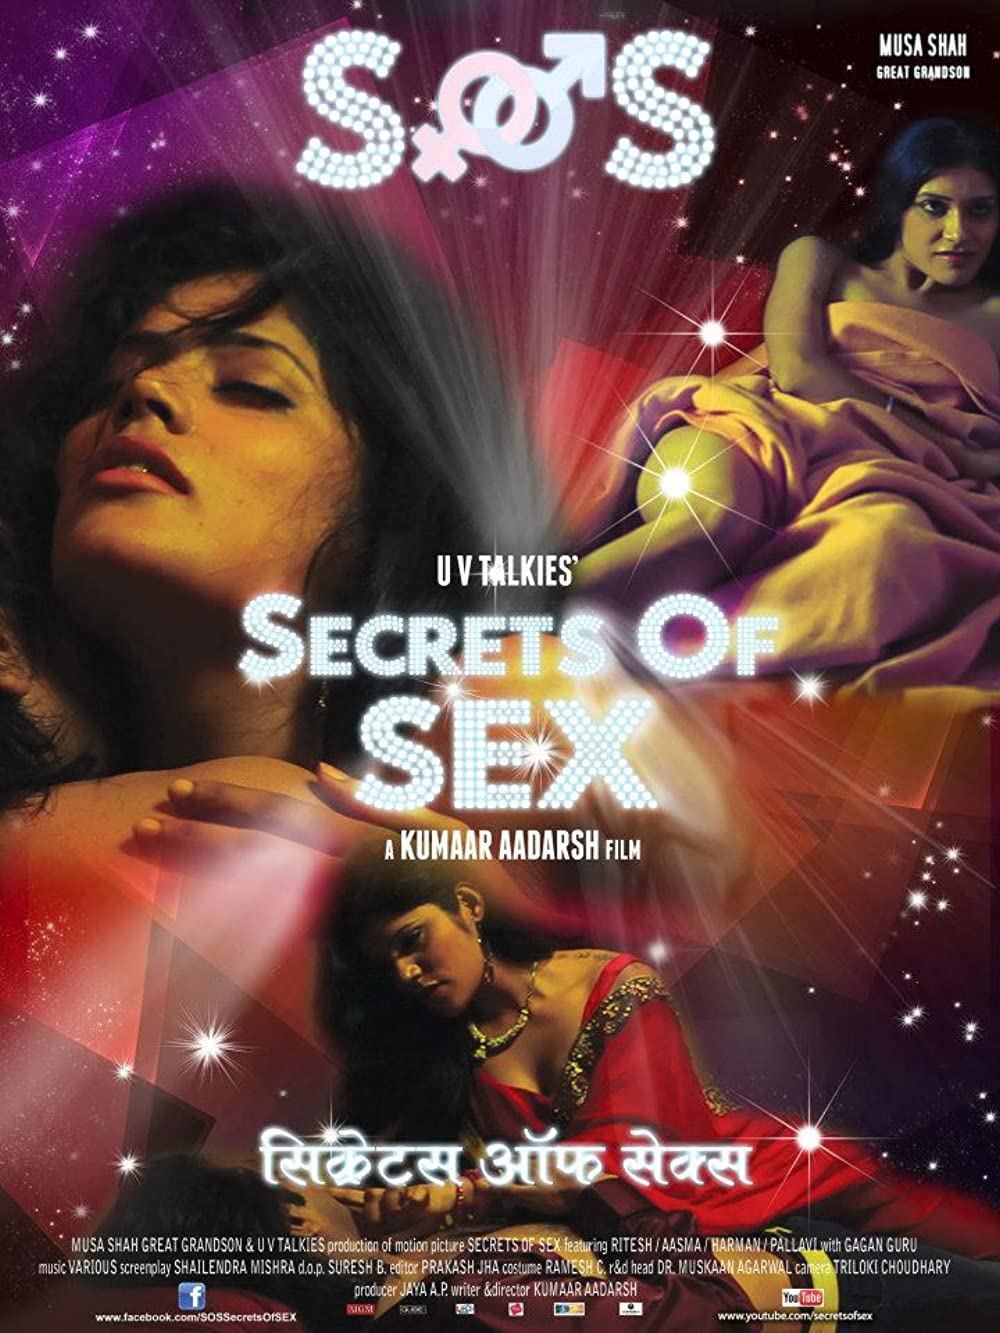 18+ SOS Secrets of Sex 2013 Hindi 1080p HDRip ESubs 1.6GB Download